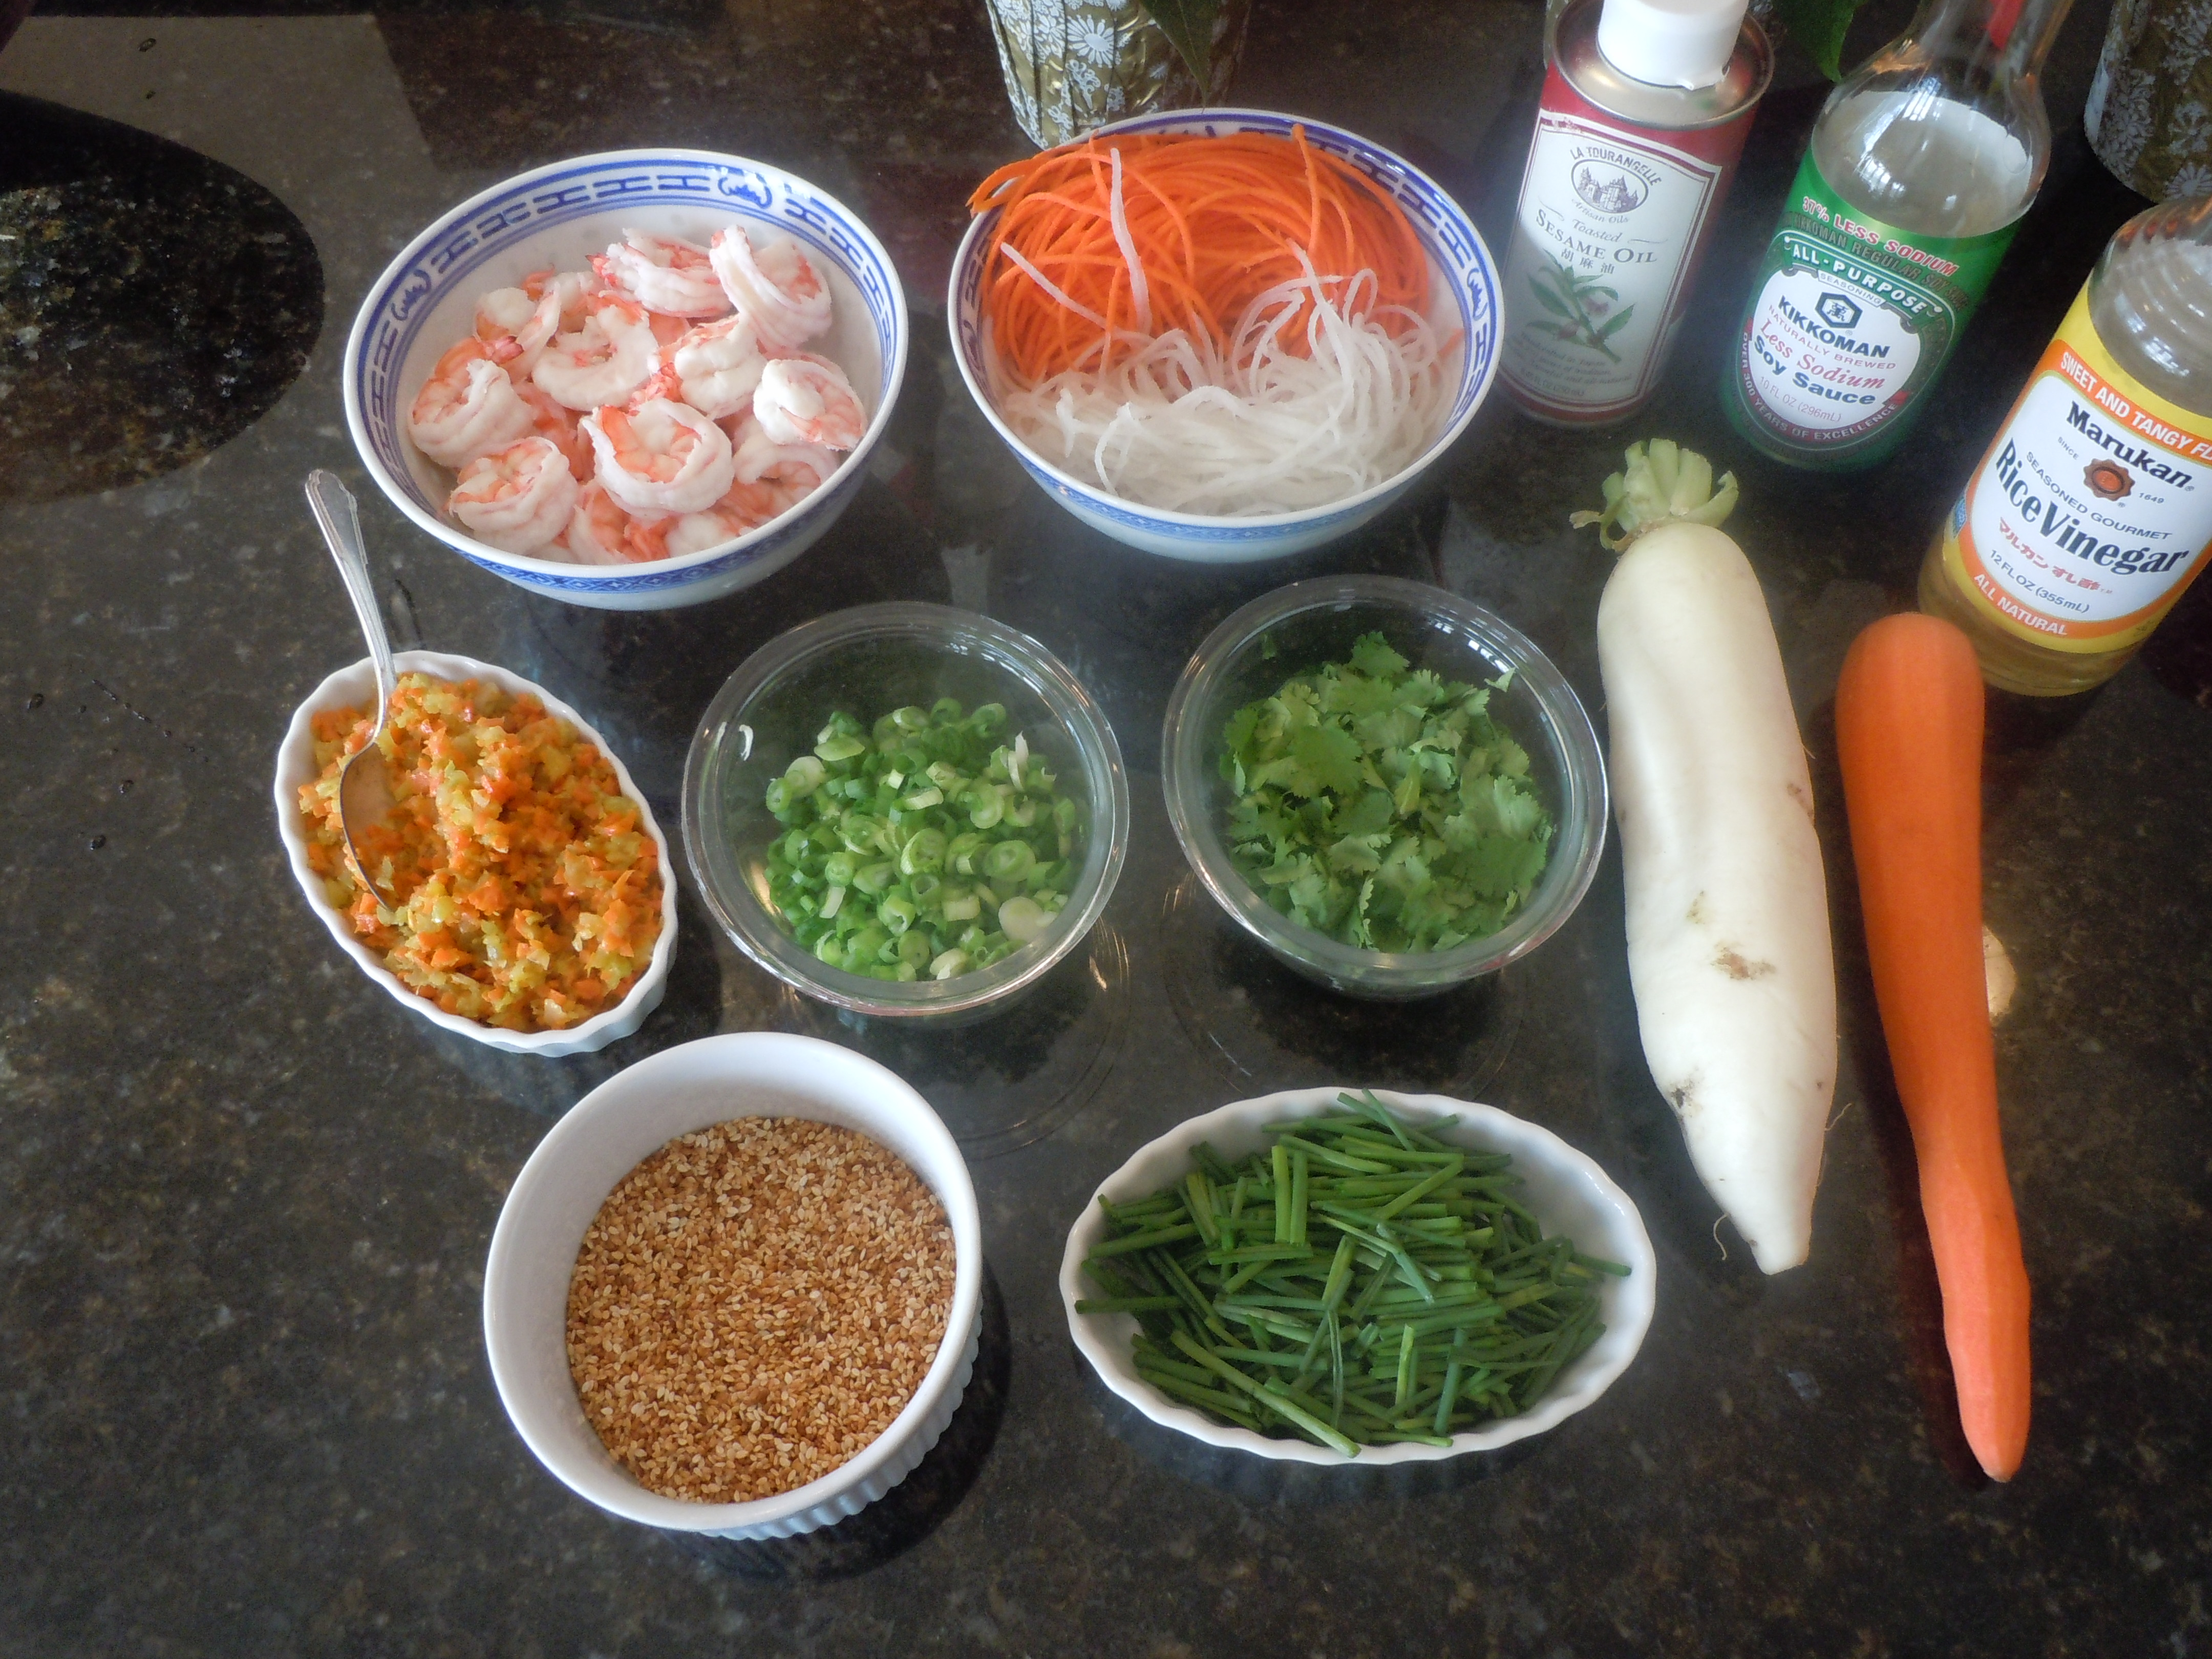 Fresh shrimp chive spring rolls recipevideo the traveling epicurean 001 forumfinder Choice Image